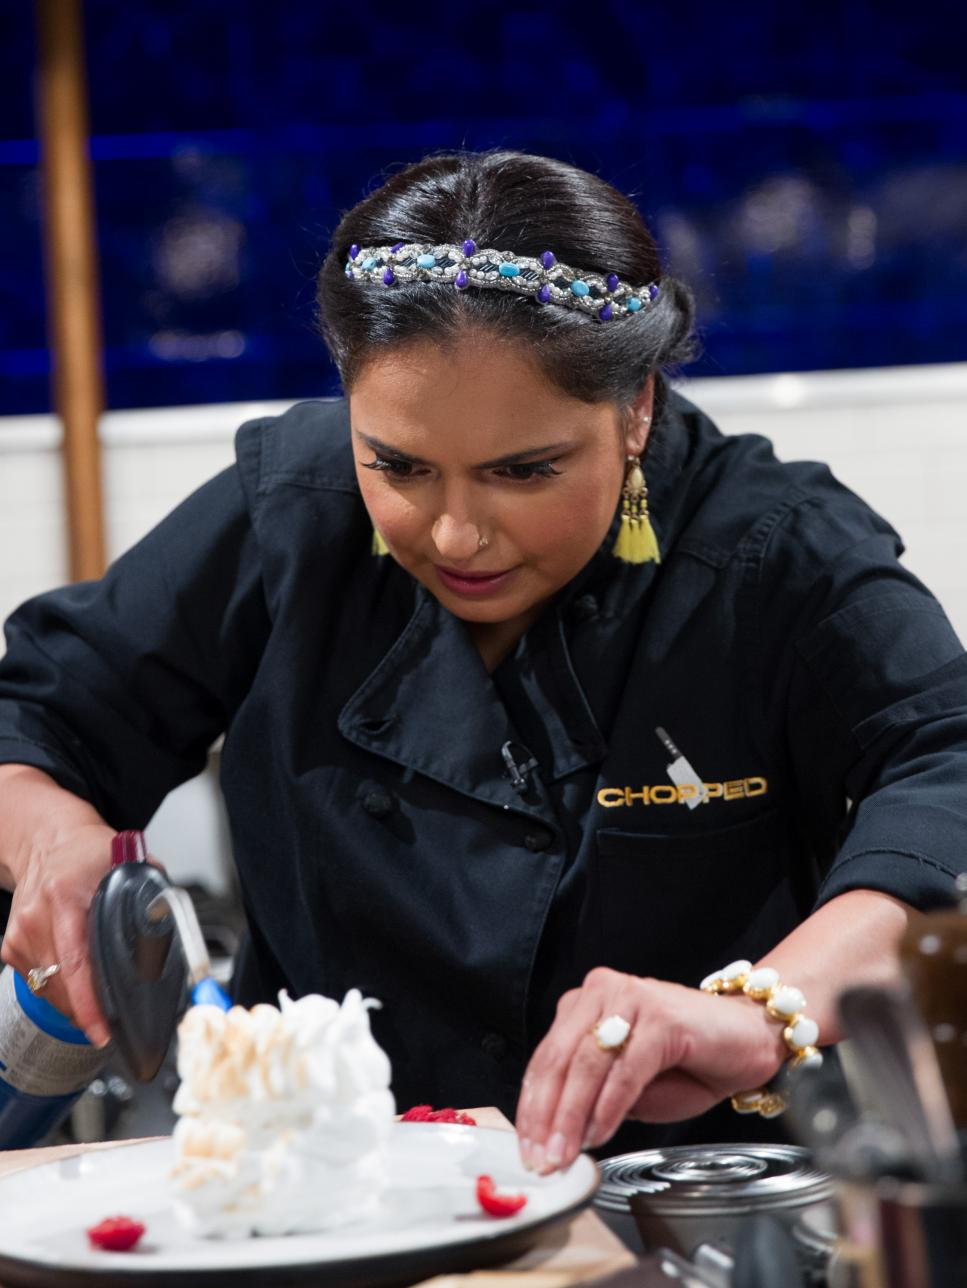 chopped dessert competition